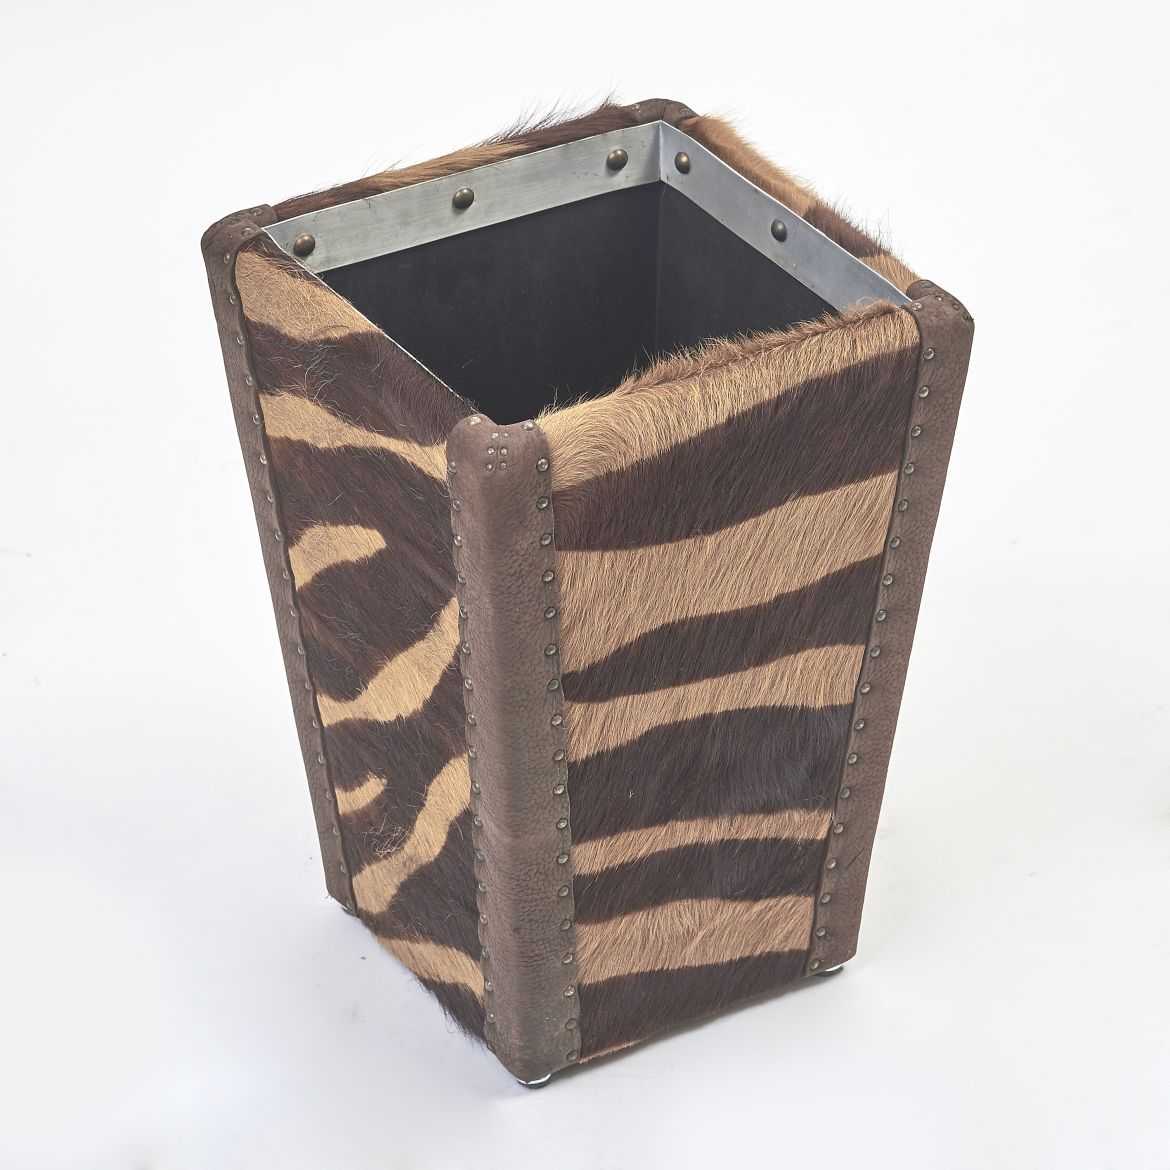 Cow Hide Waste Paper Basket